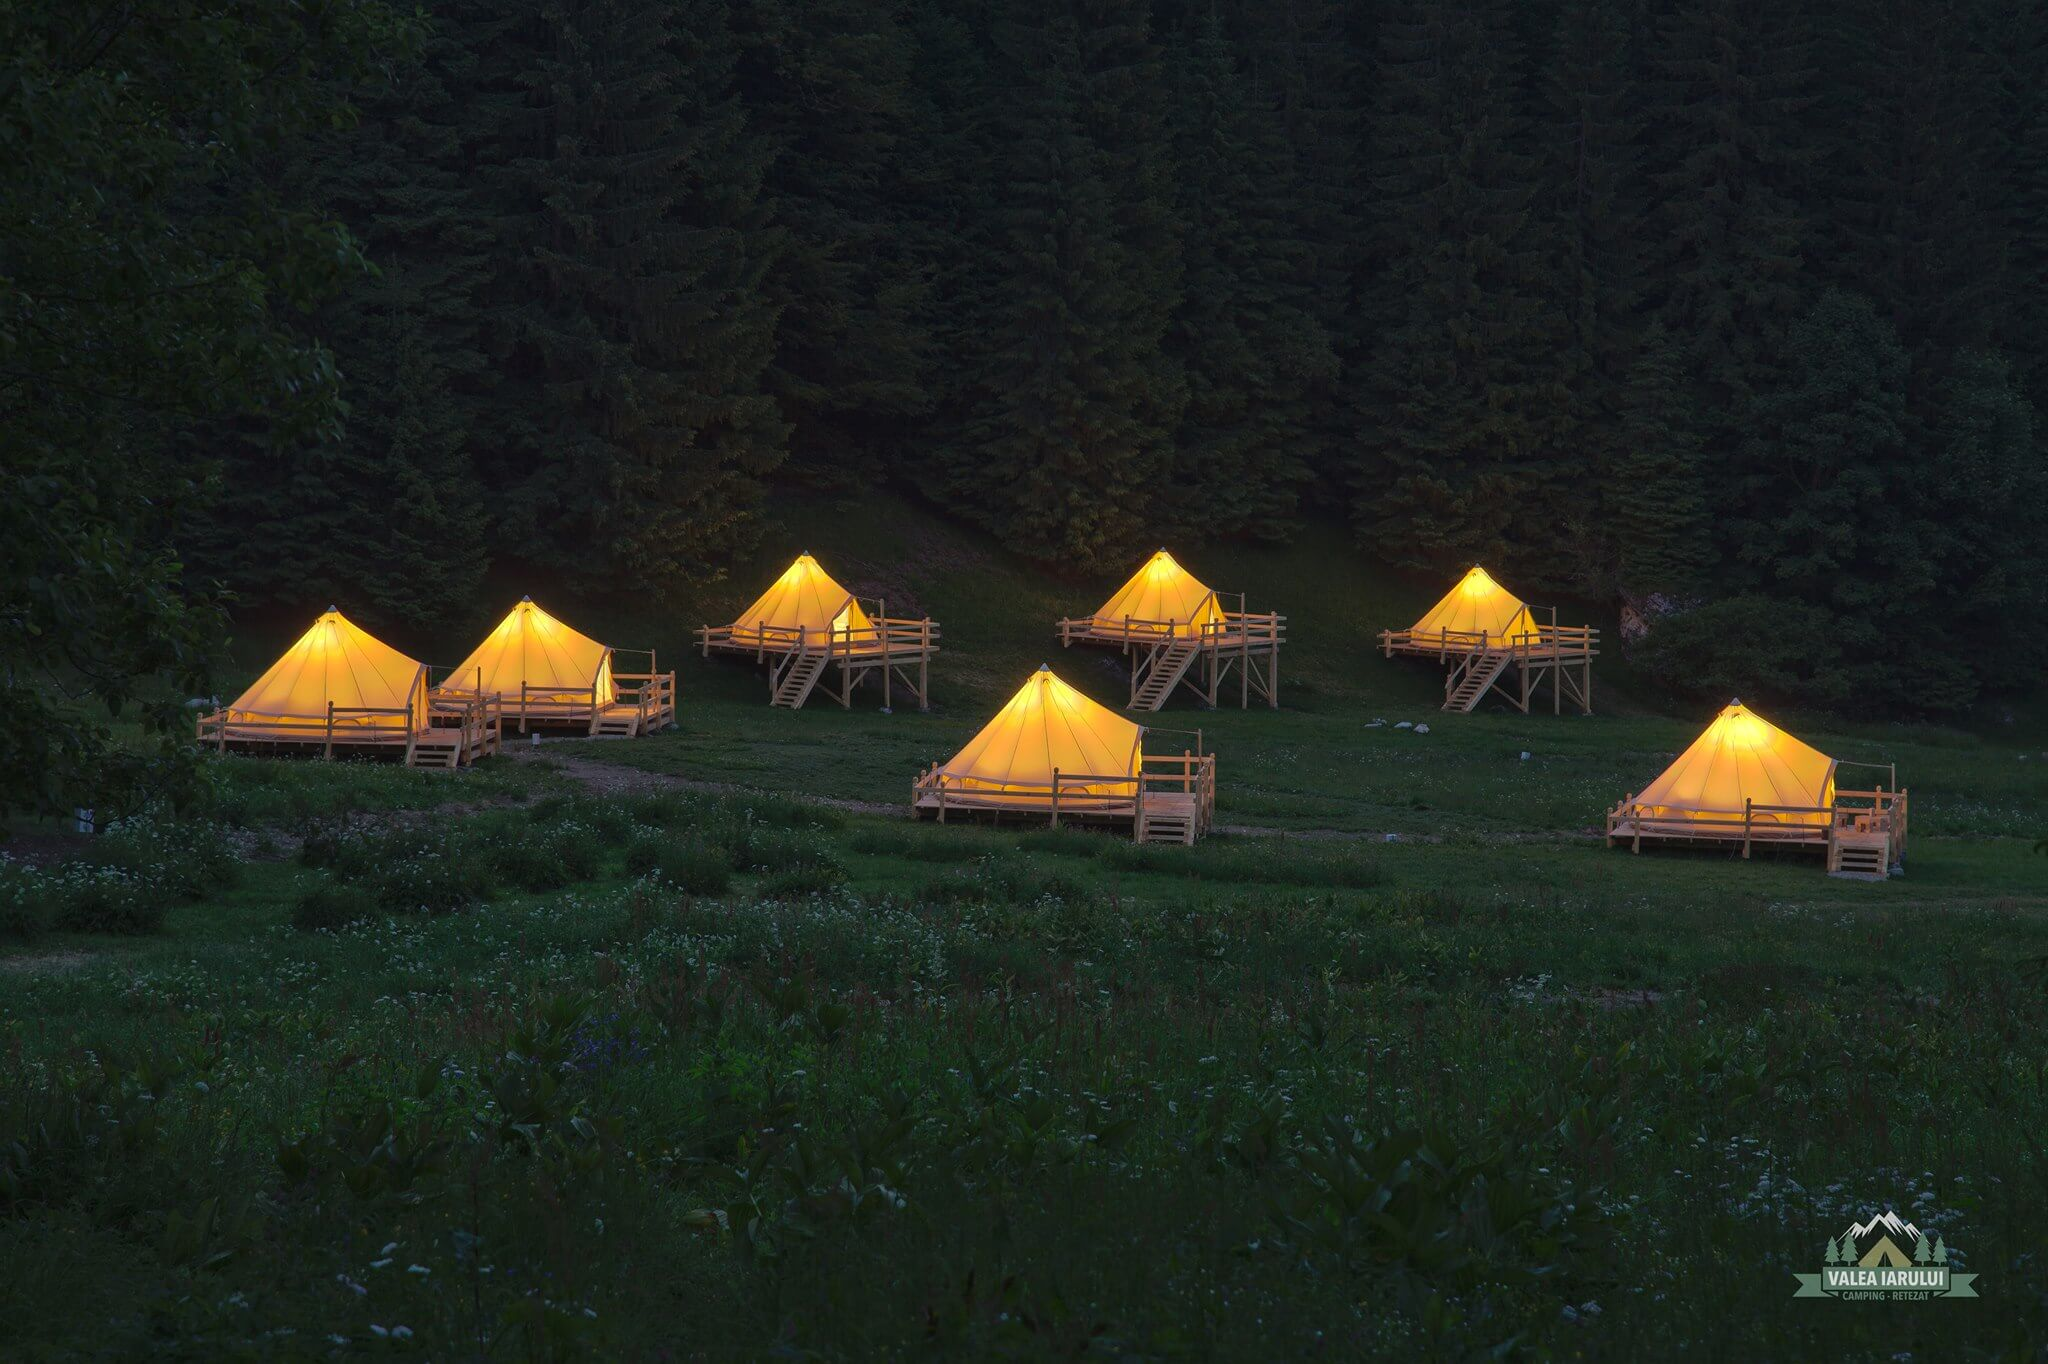 Lighted glamping tents at dusk